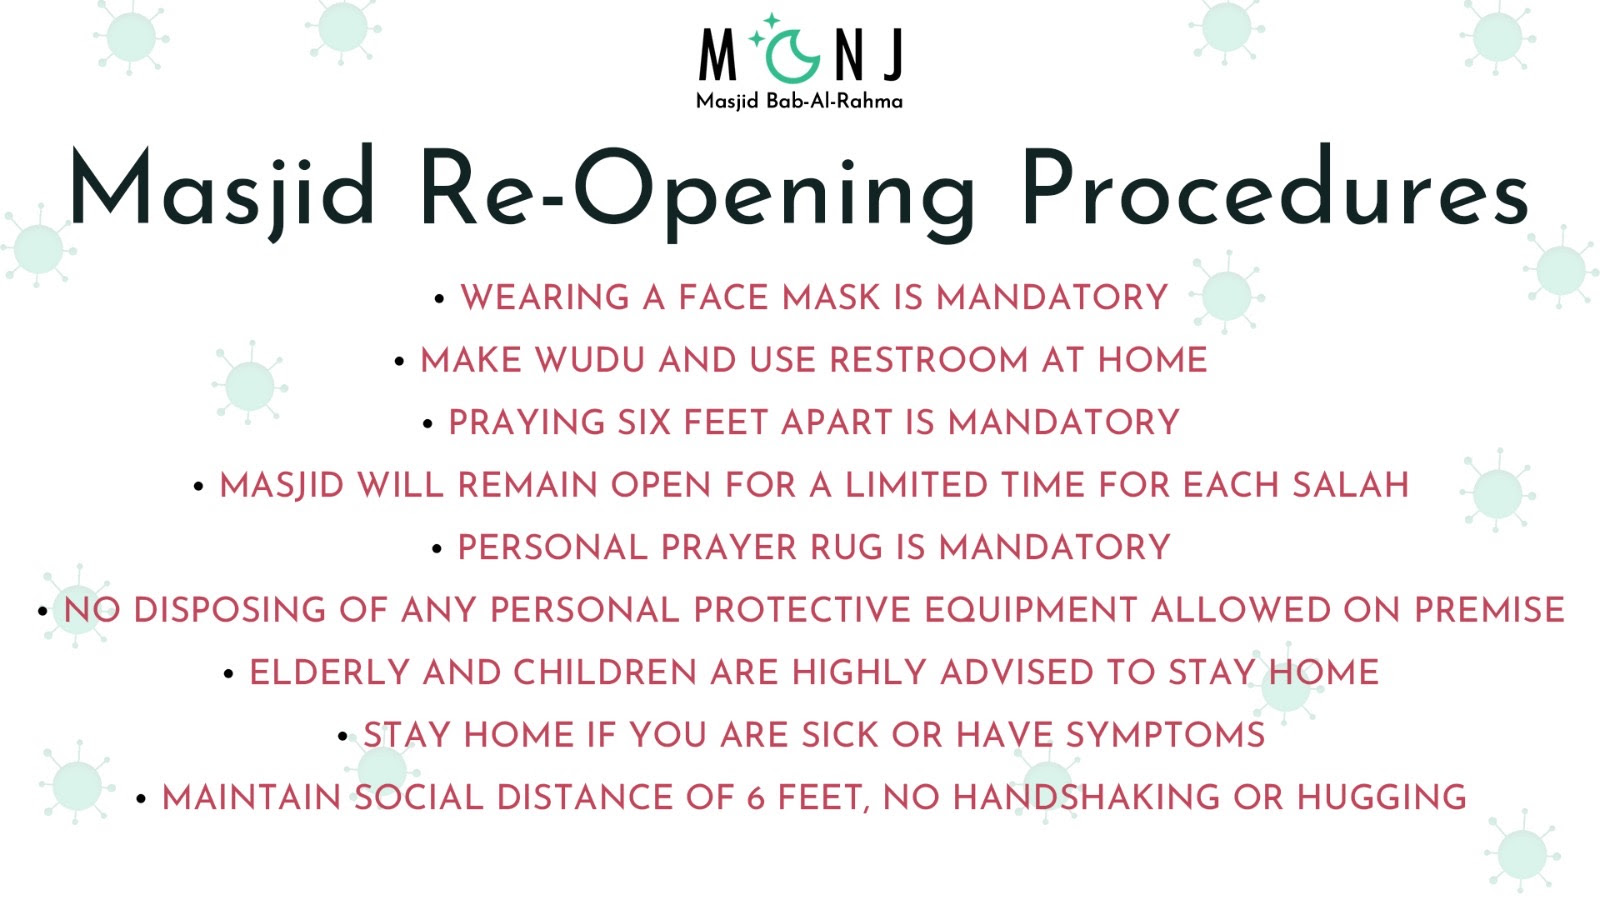 Masjid Re-Opening Procedures